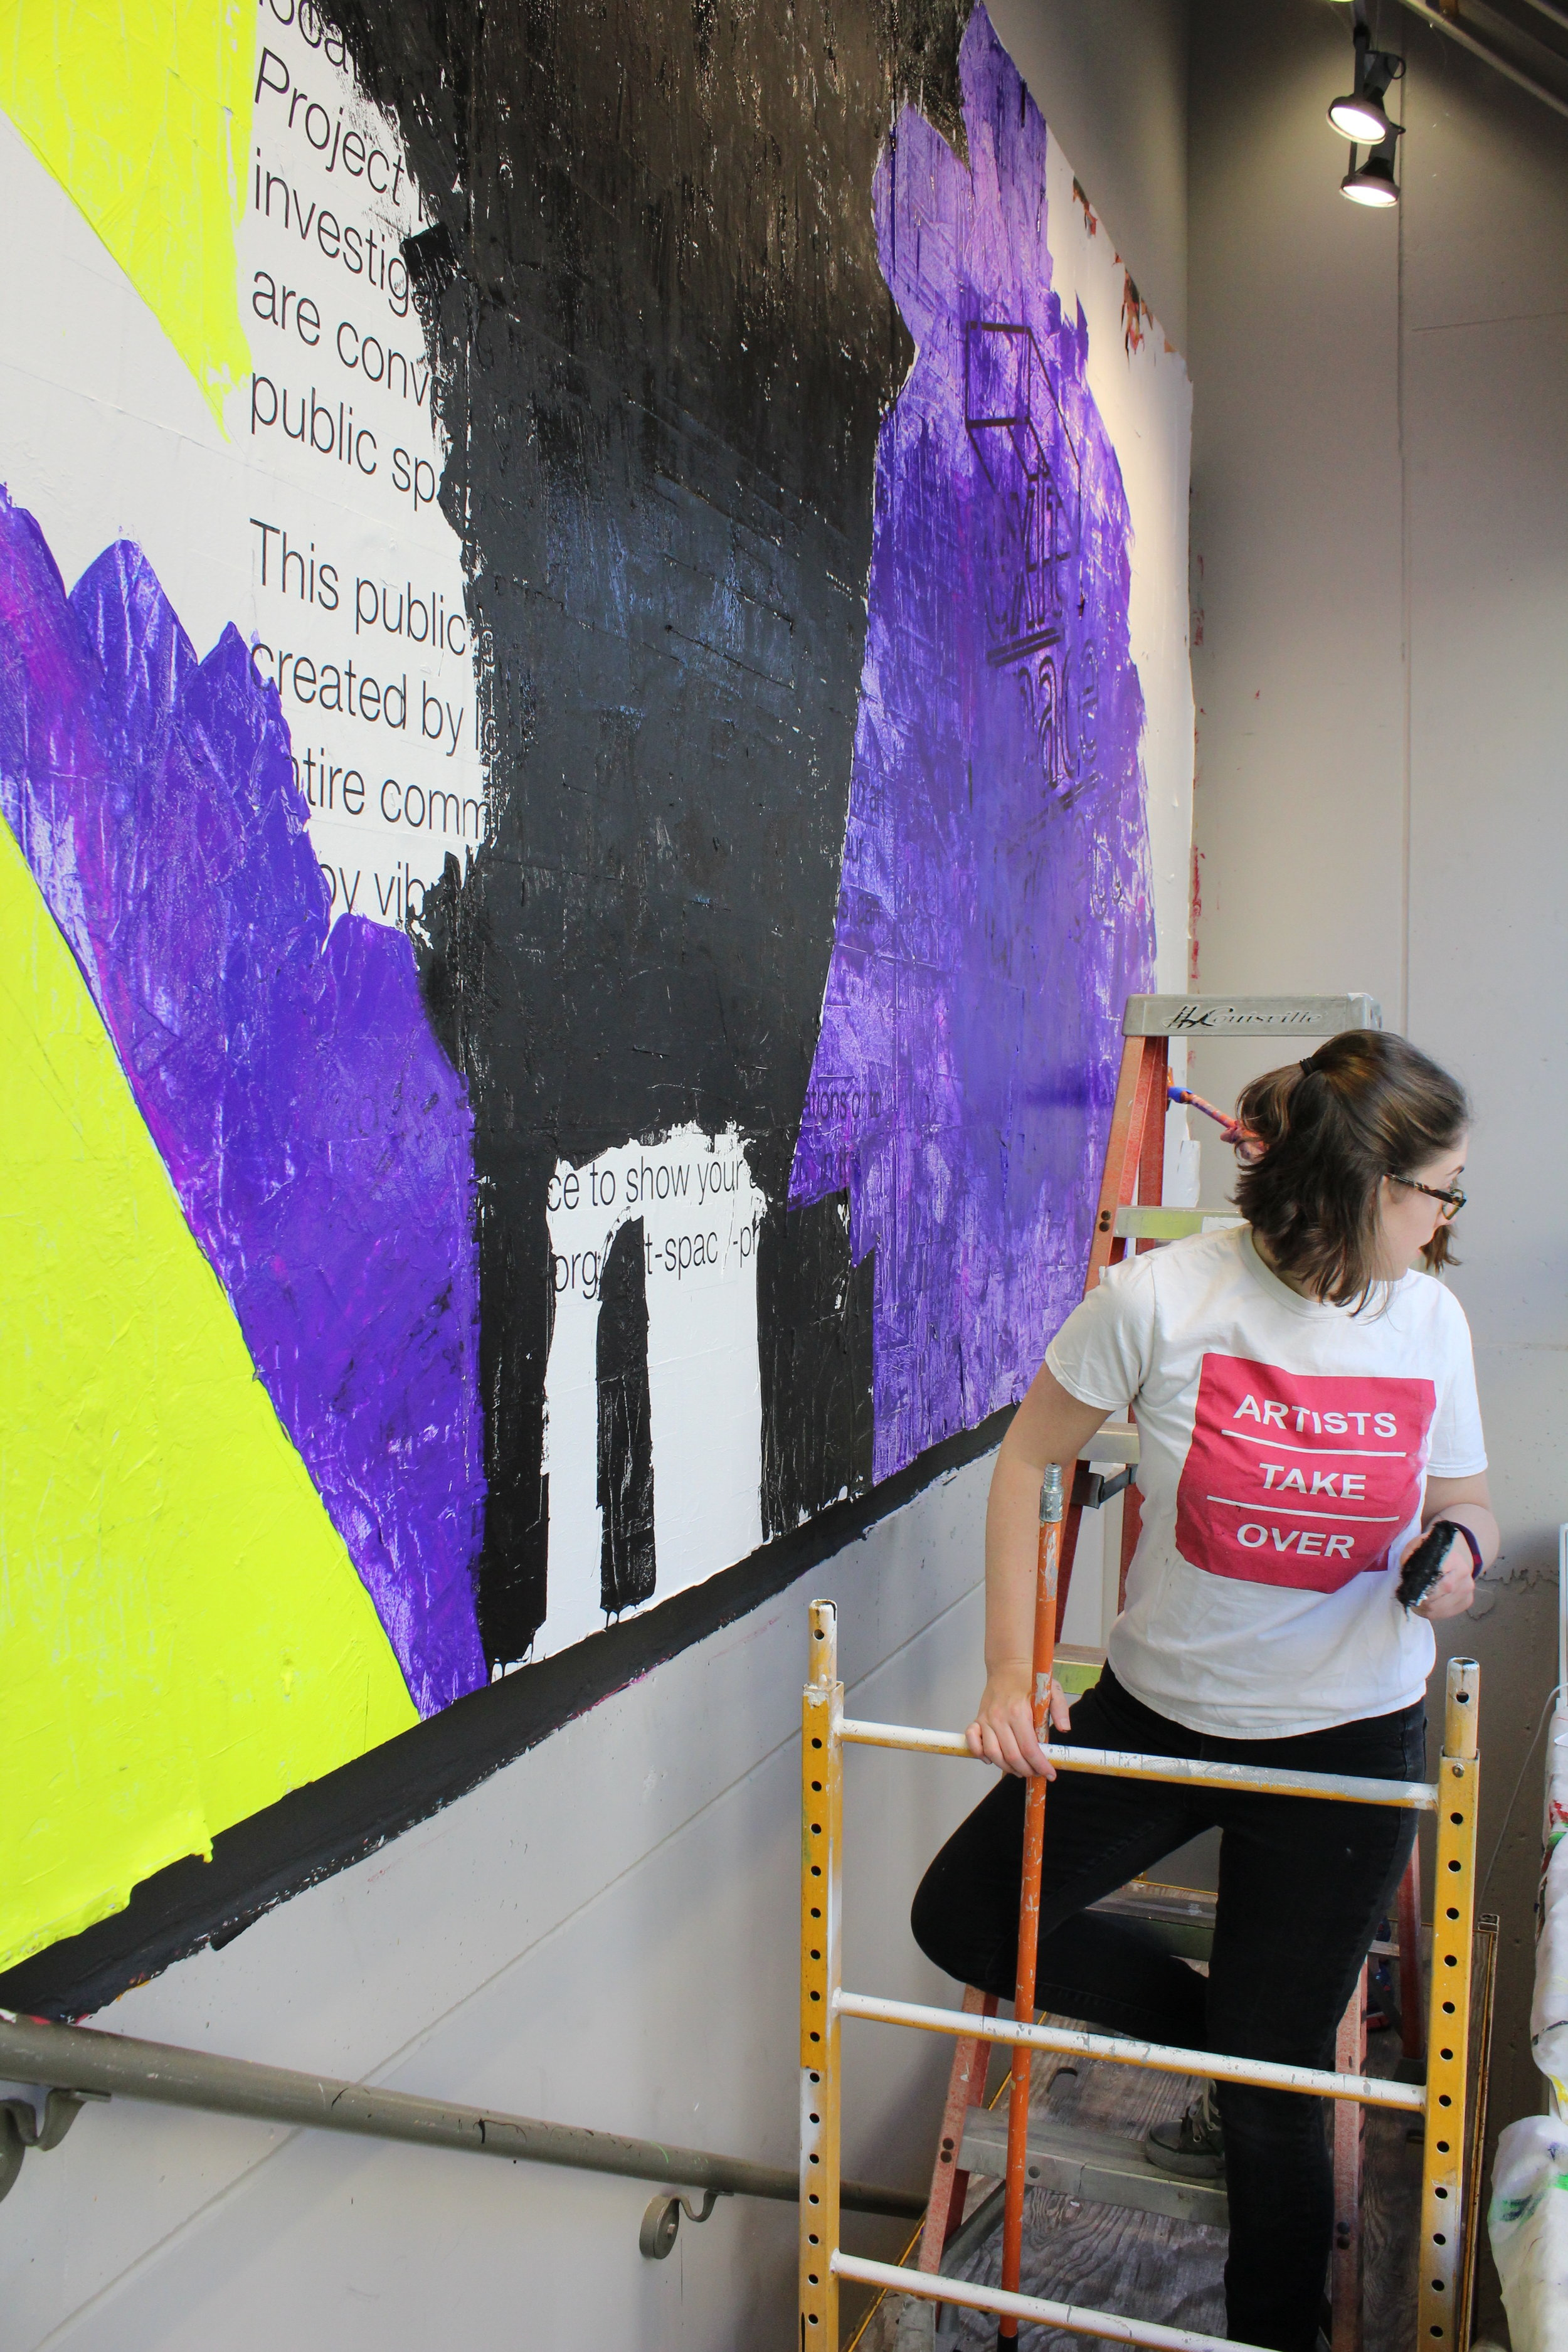 Process of Garman, Lloyd, and Stone installing mural in Exit Space Stairwell